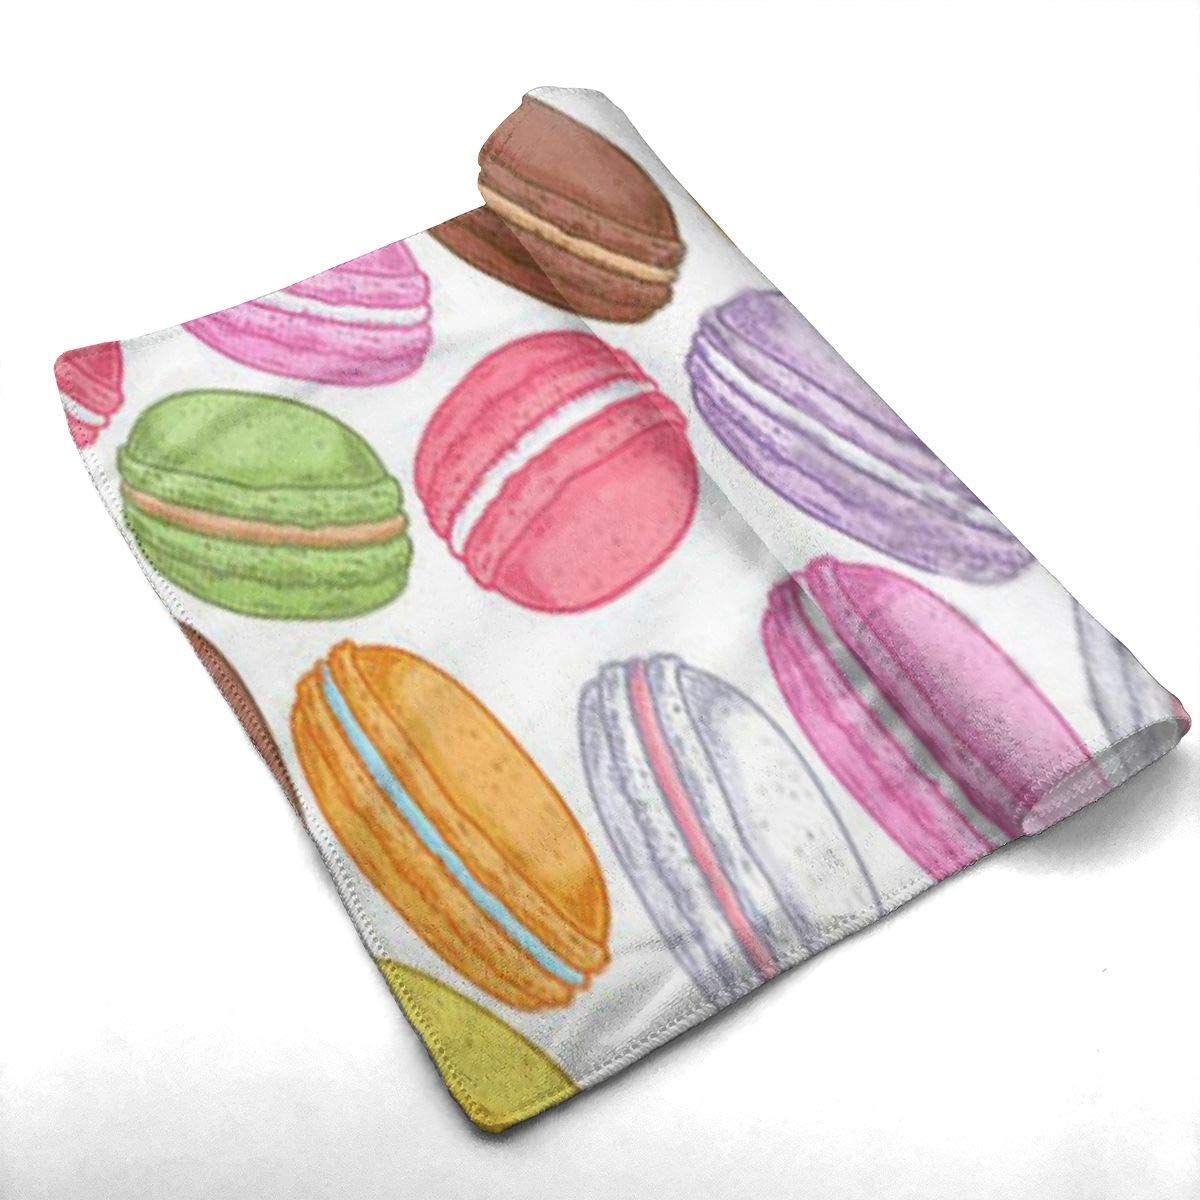 Yago And Spa fhjhfgjghfjghfj Asciugamani Hand Towels Beach Towel Colorful Macarons 2 Highly Absorbent Quick-Dry Towels Kitchen Dishcloths,Dish//Tea Towels Sports Towel for Hand Face Gym